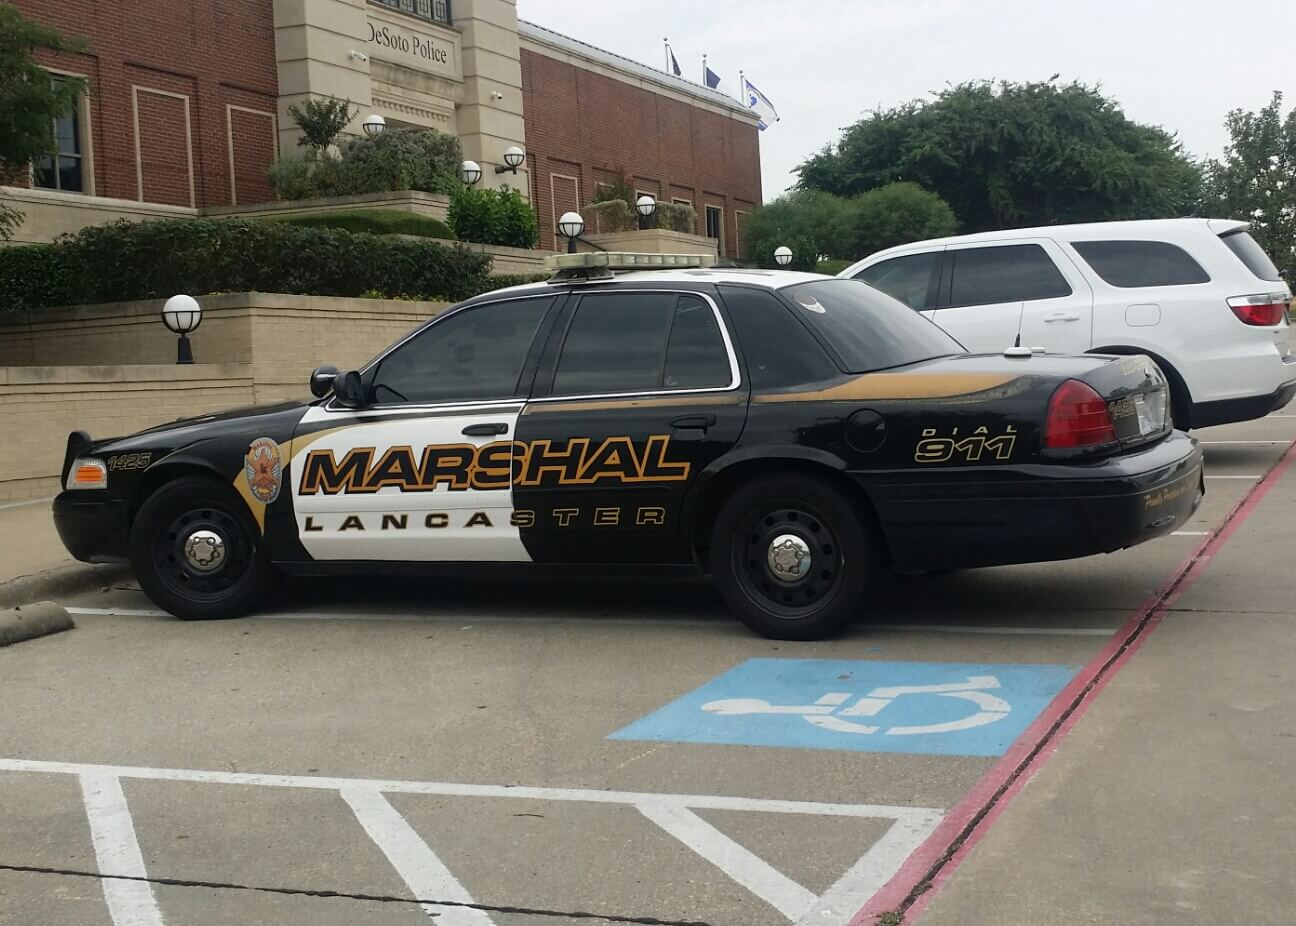 Lancaster Marshal's Car Warrants in Lancaster Municipal Court for 75134 and 75146